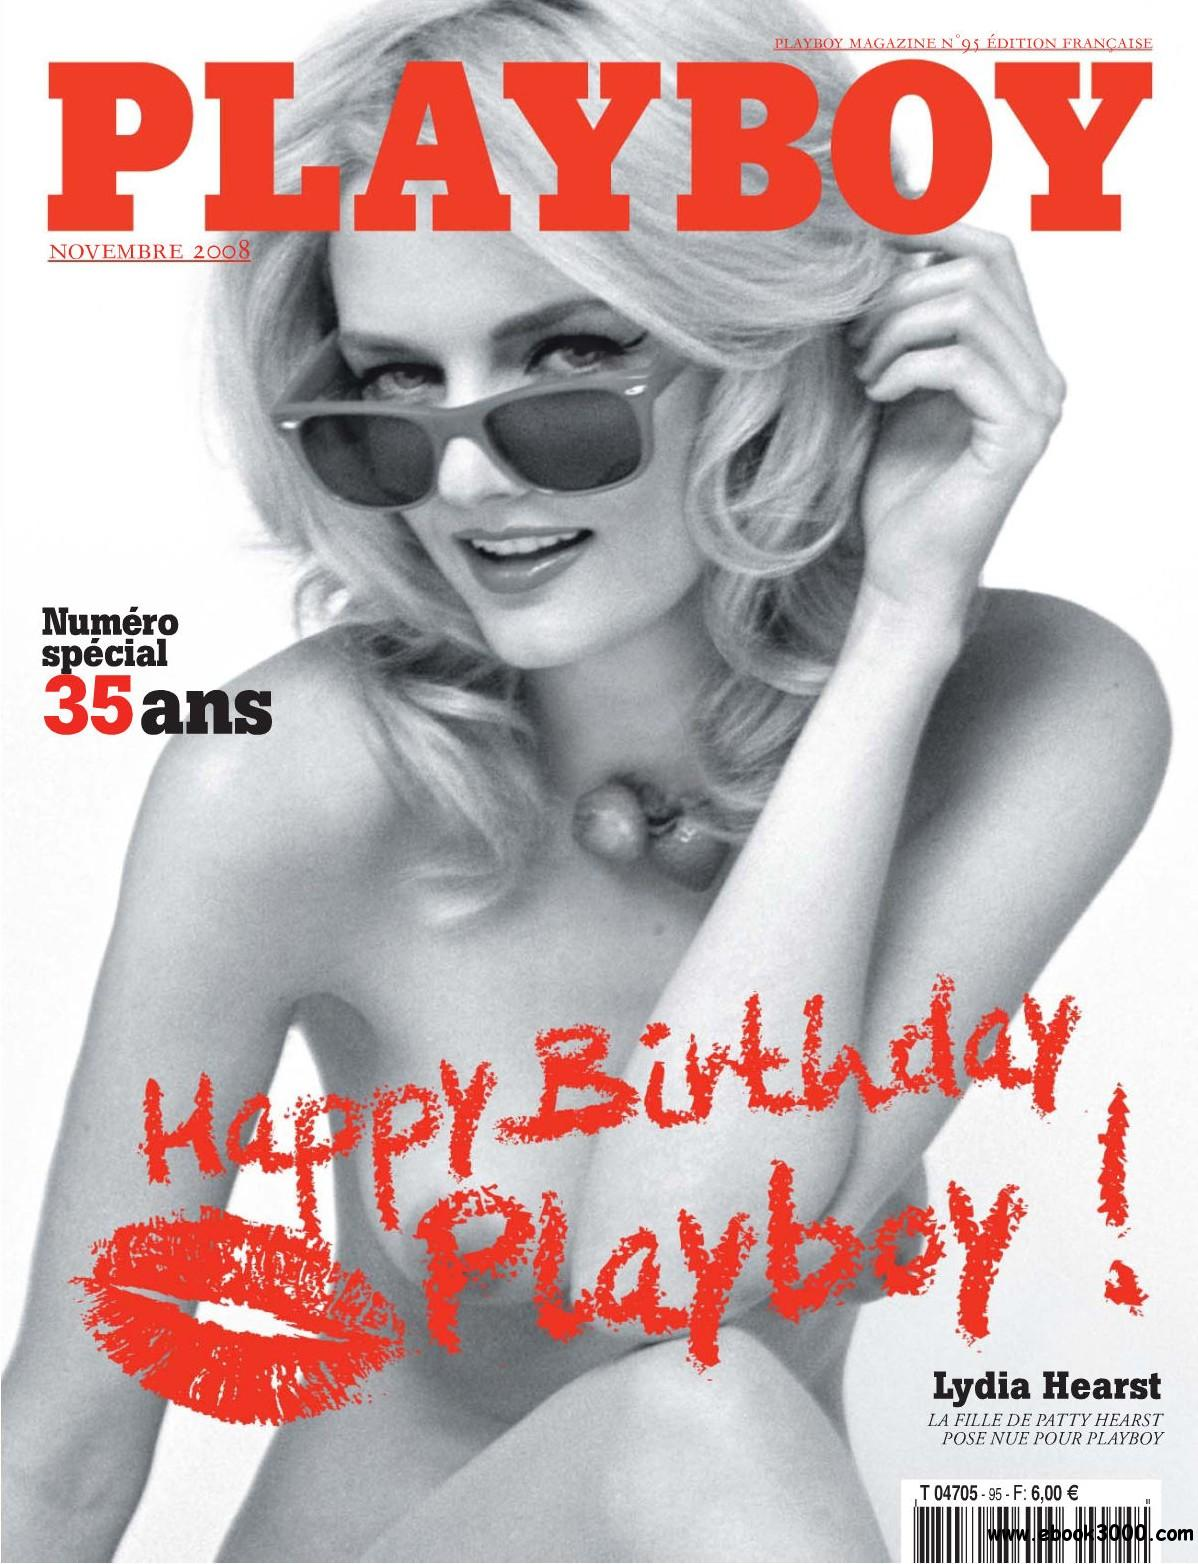 Playboy France - November 2008 free download